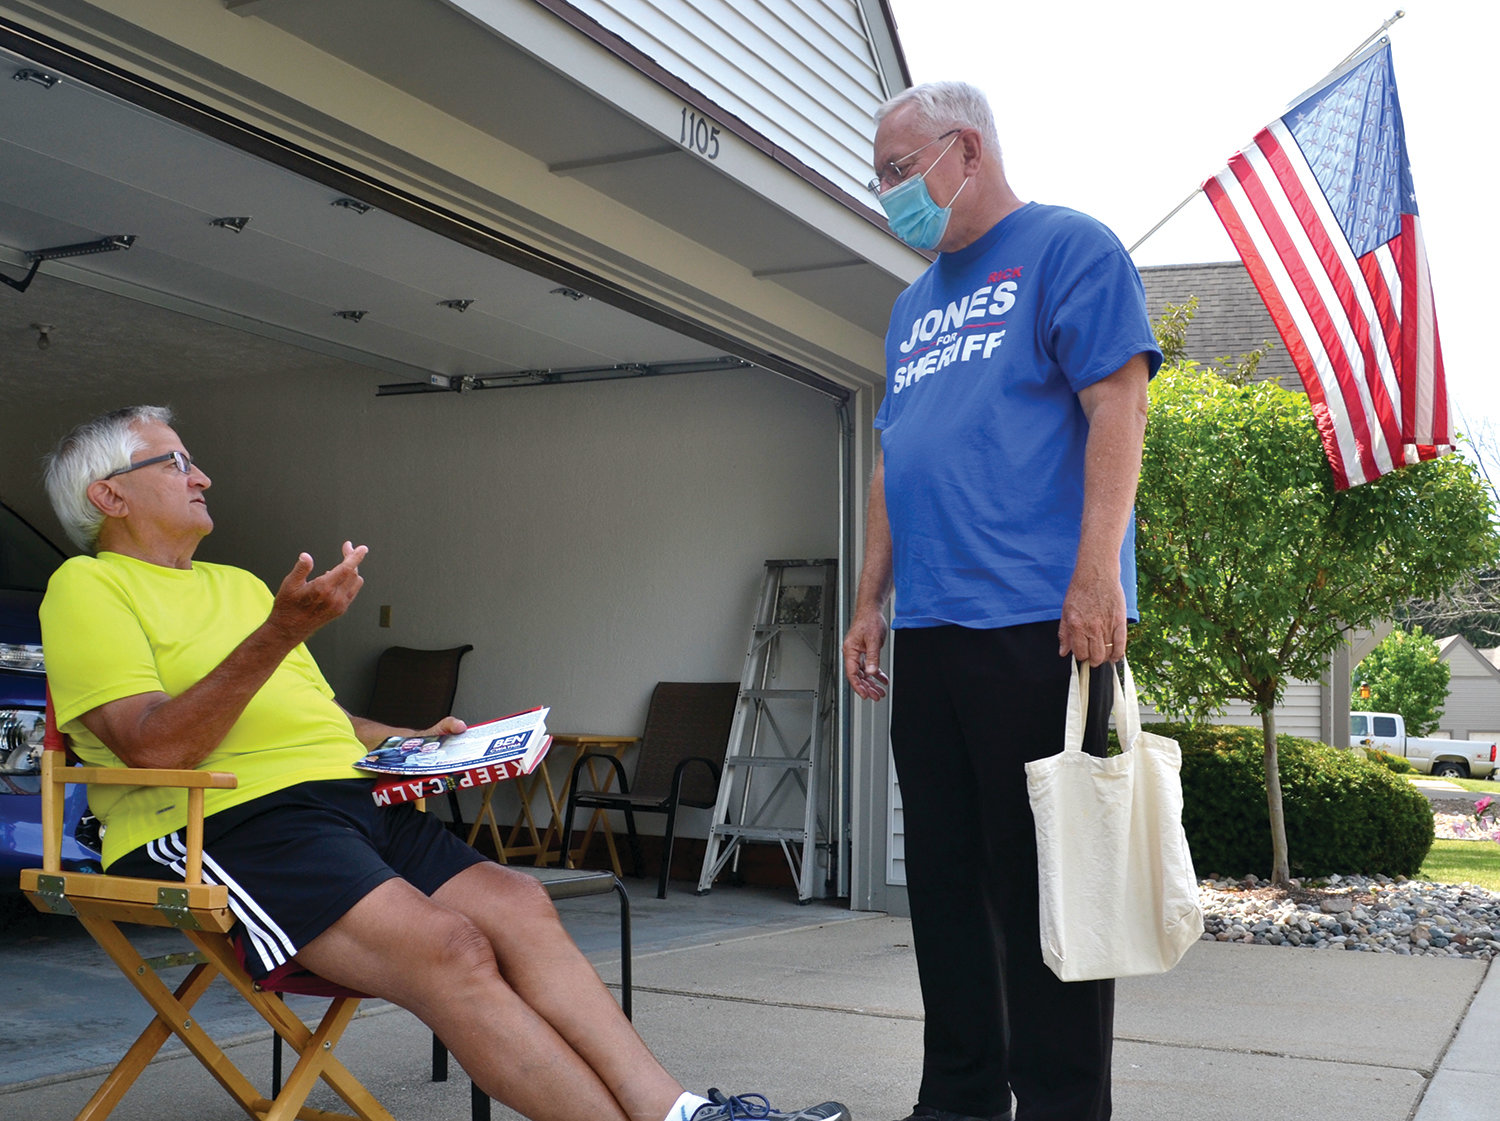 Rick Jones speaks with voter Jim Smith at his home on Gull Street.